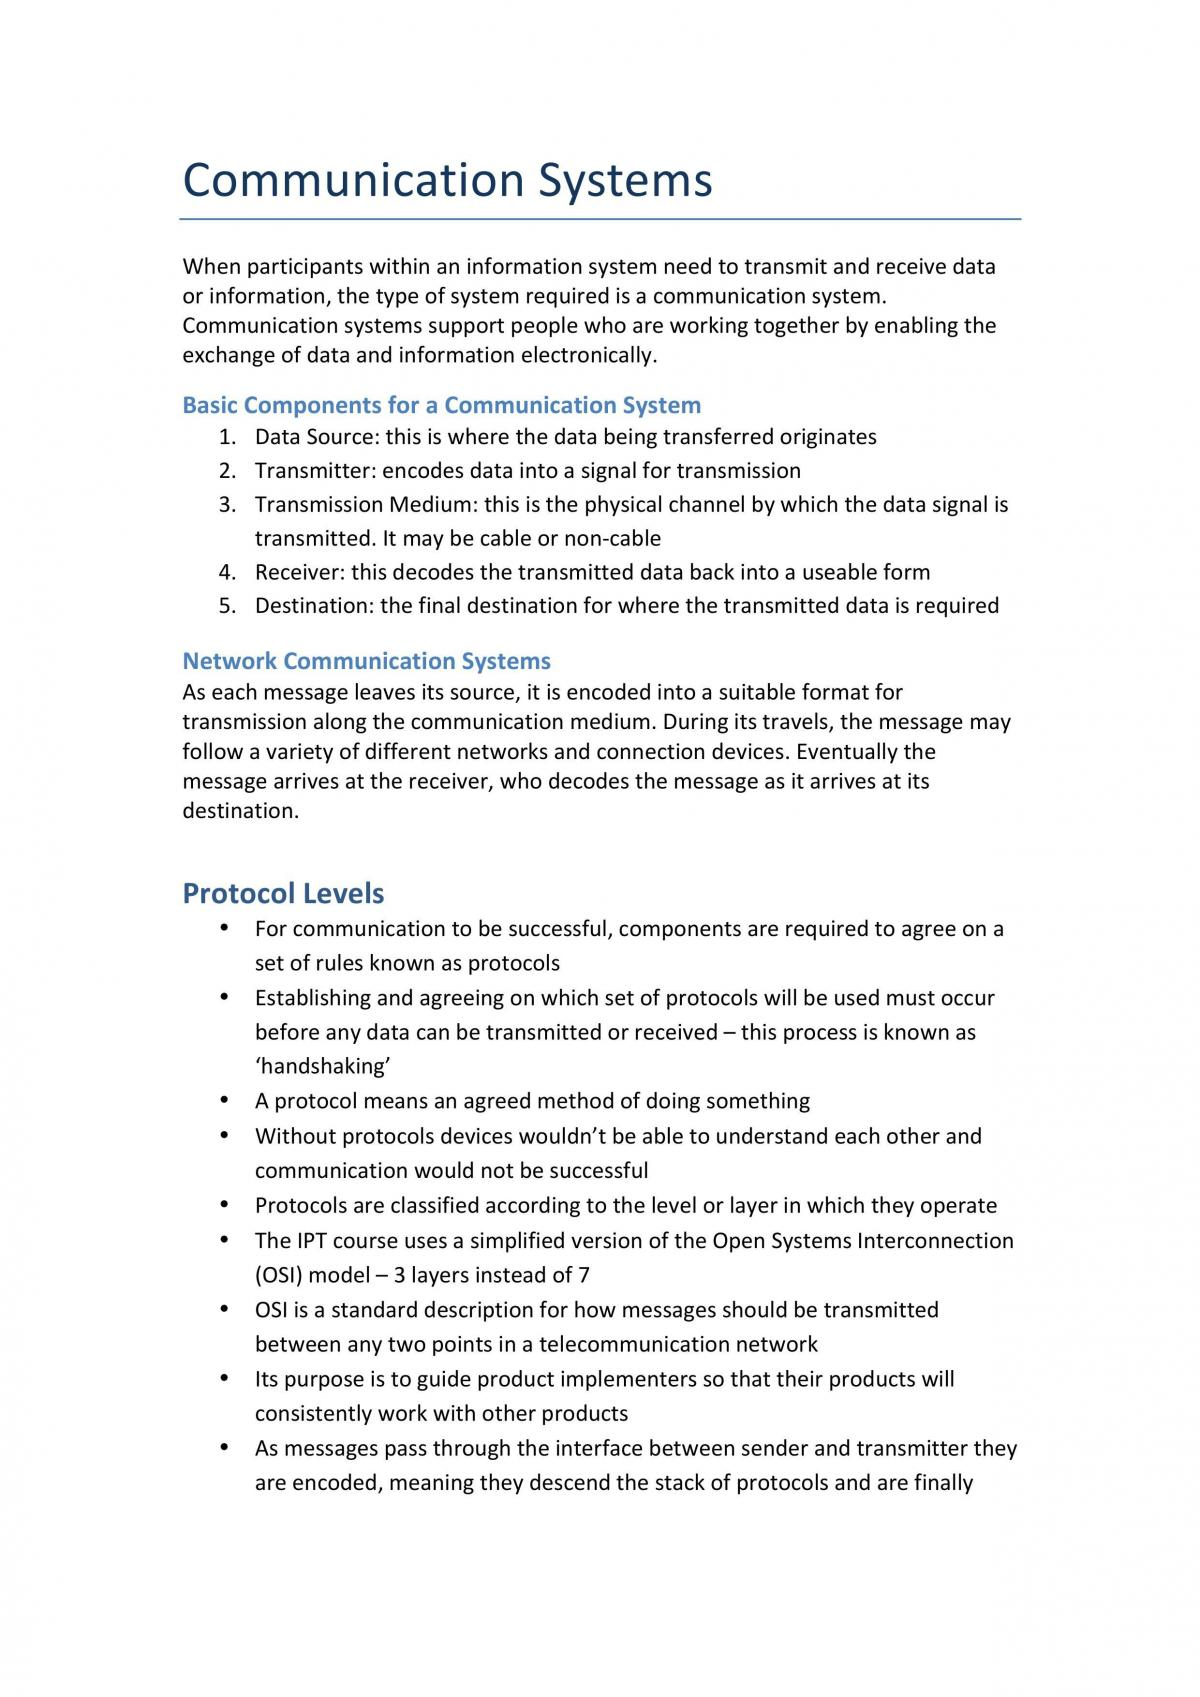 Communication Systems Summary - Page 1